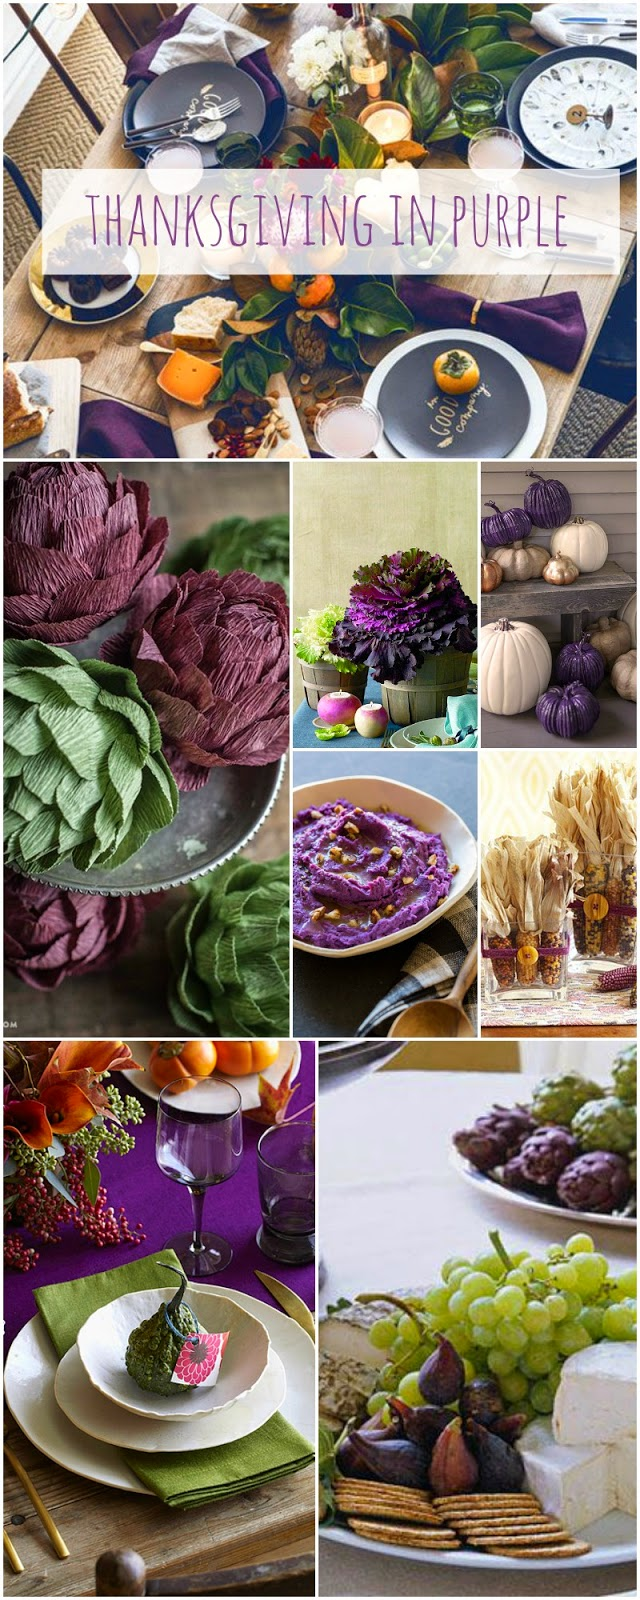 Thanksgiving in purple